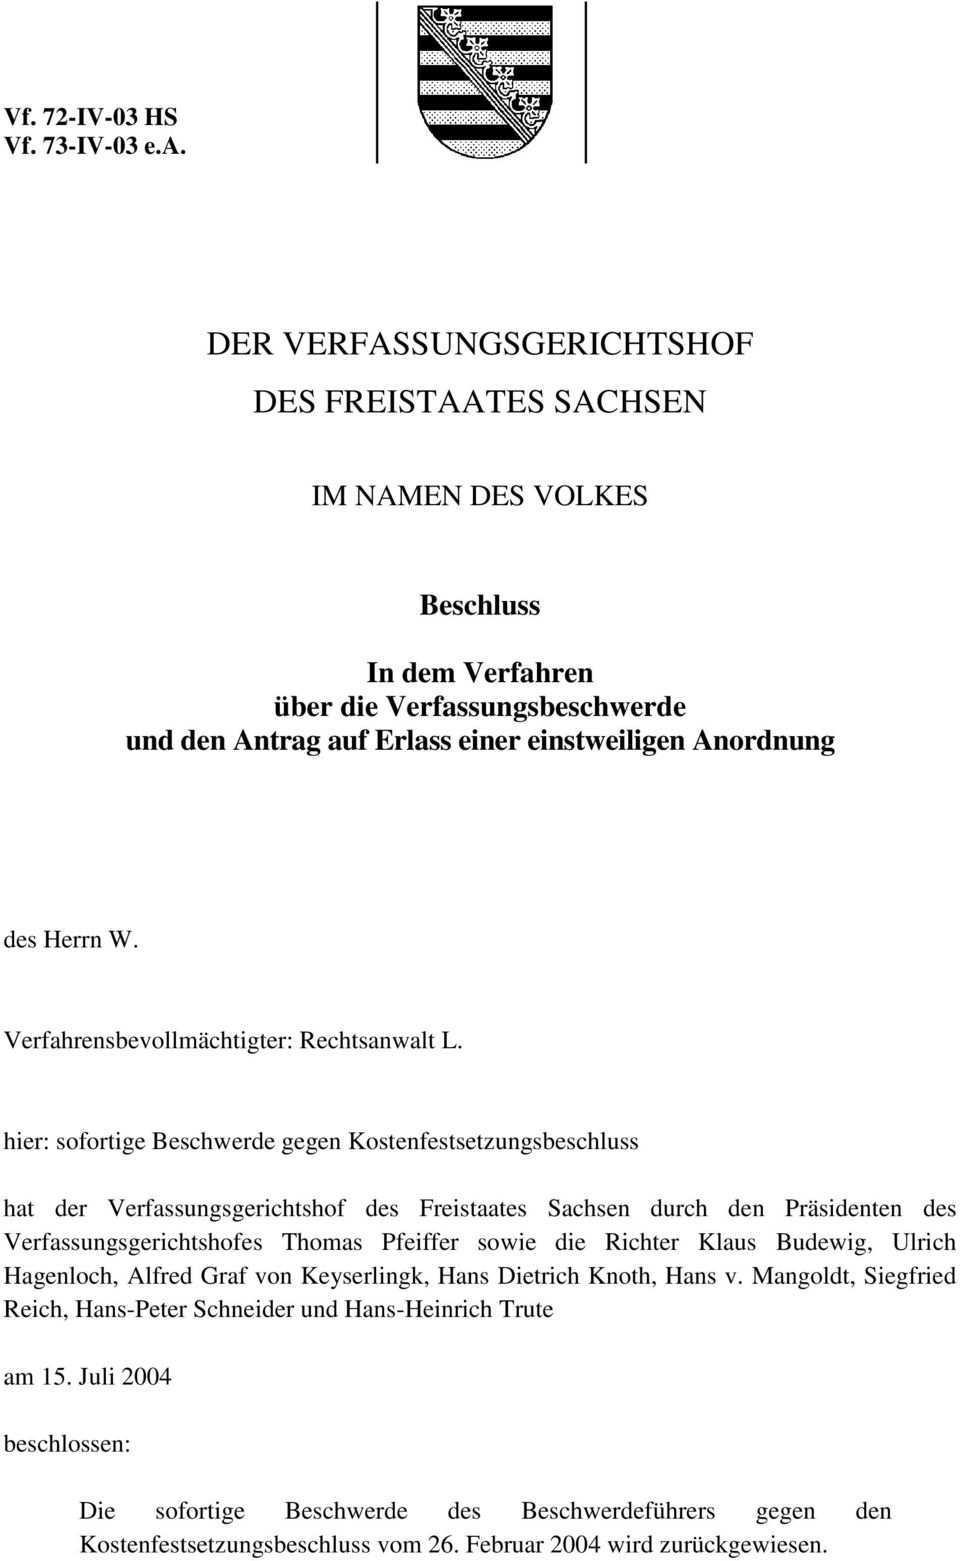 Brandenburgisches Oberlandesgericht Pdf Free Download